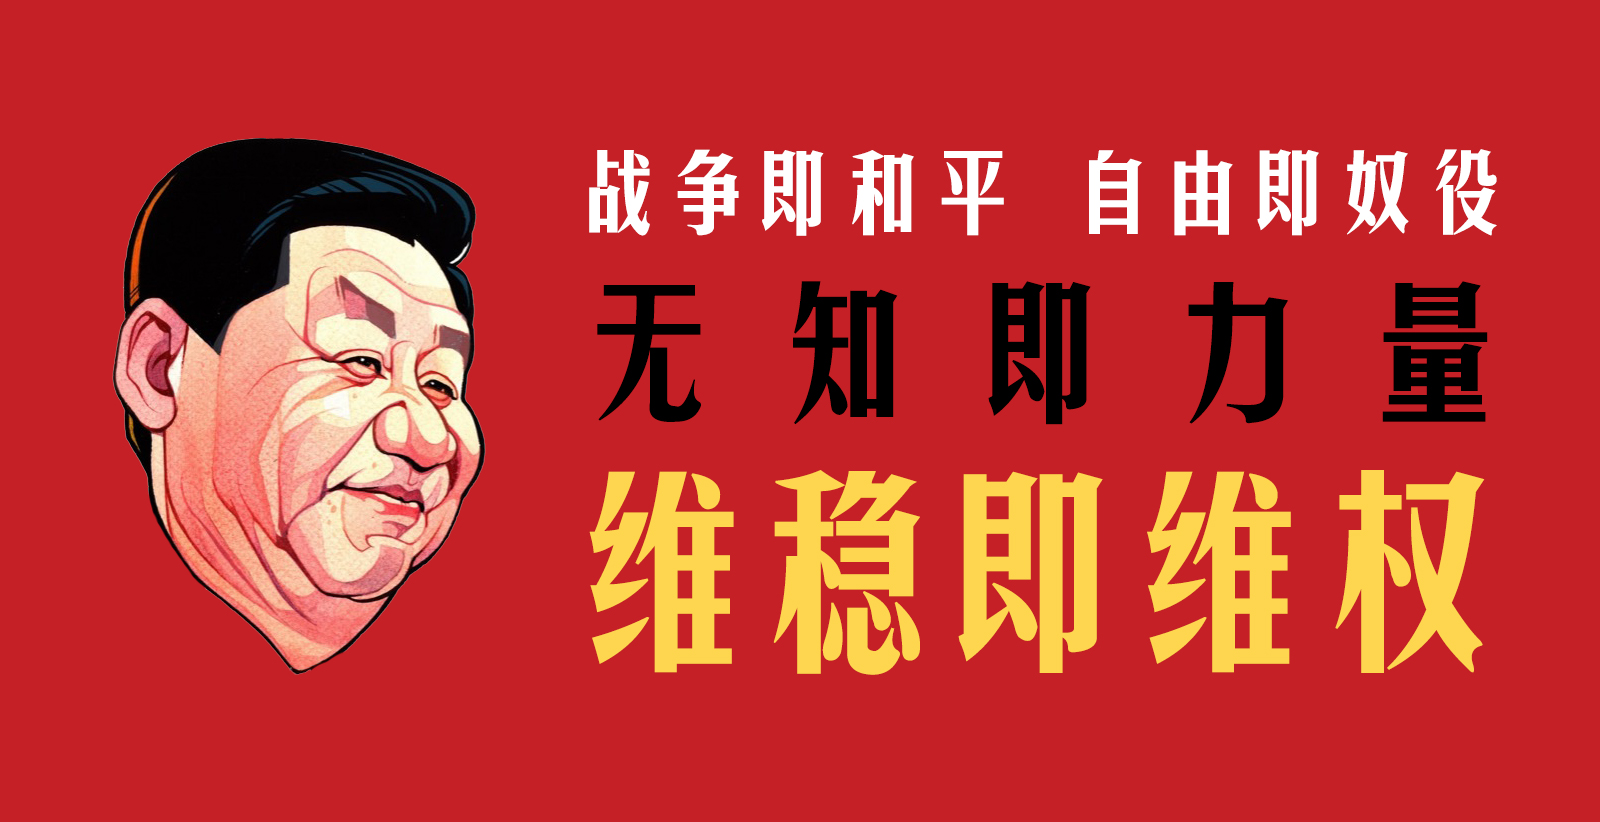 Xi: Stability Maintenance Is Rights Defense